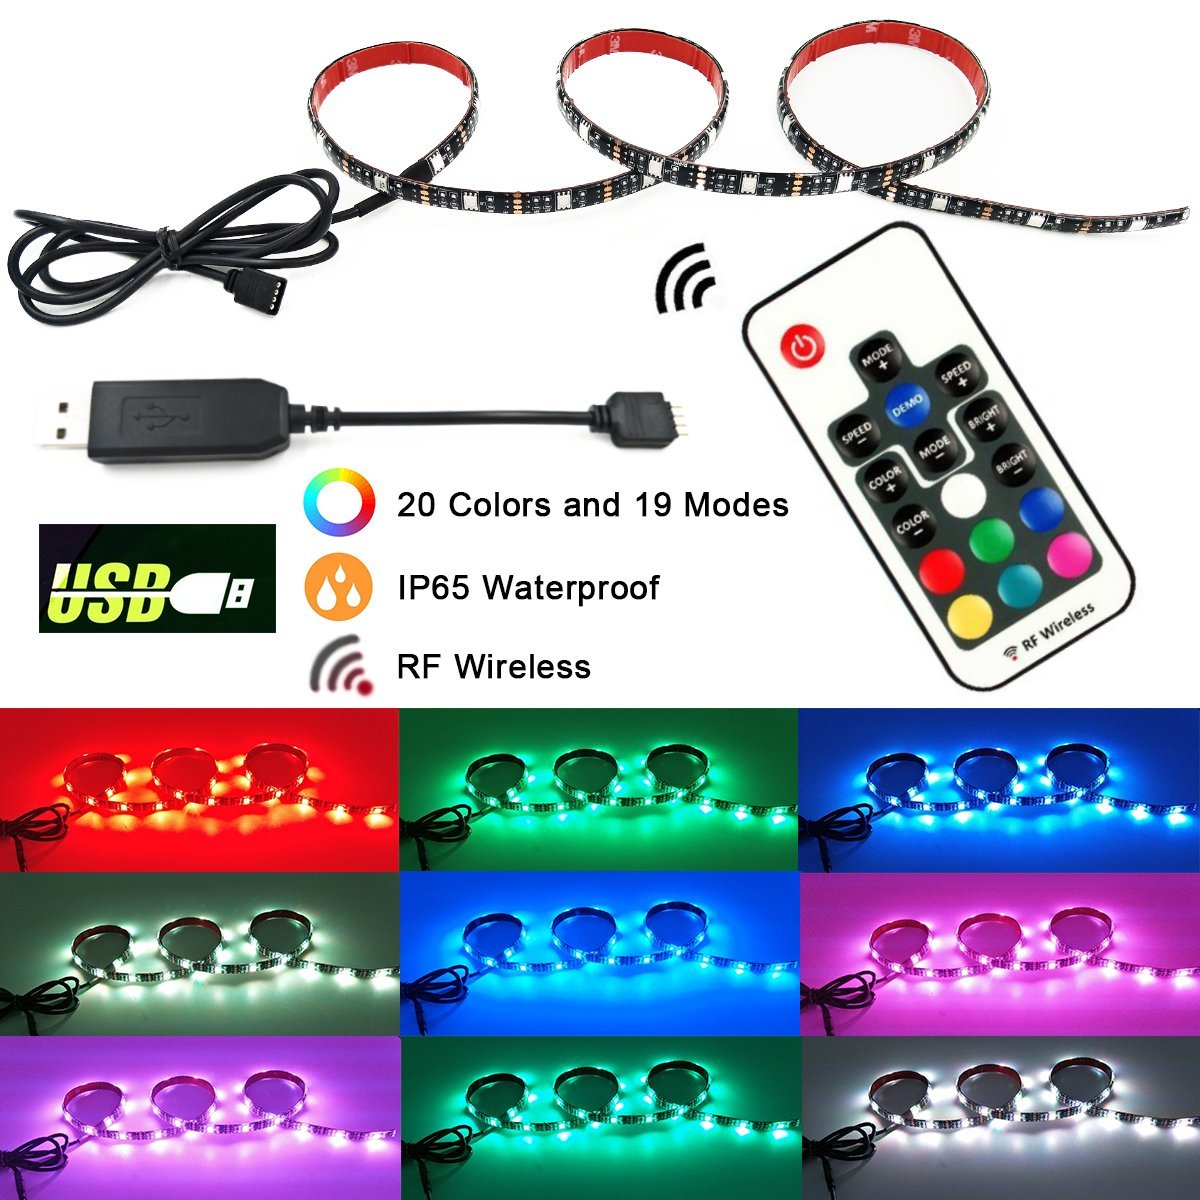 RGB USB LED Strip Light - 3.28FT Flexiable Waterproof Multicolor LED Bias Lighting TV Backlight with RF Remote Controller No Dead Control Angle for HDTV, Flat Screen TV, Desktop PC